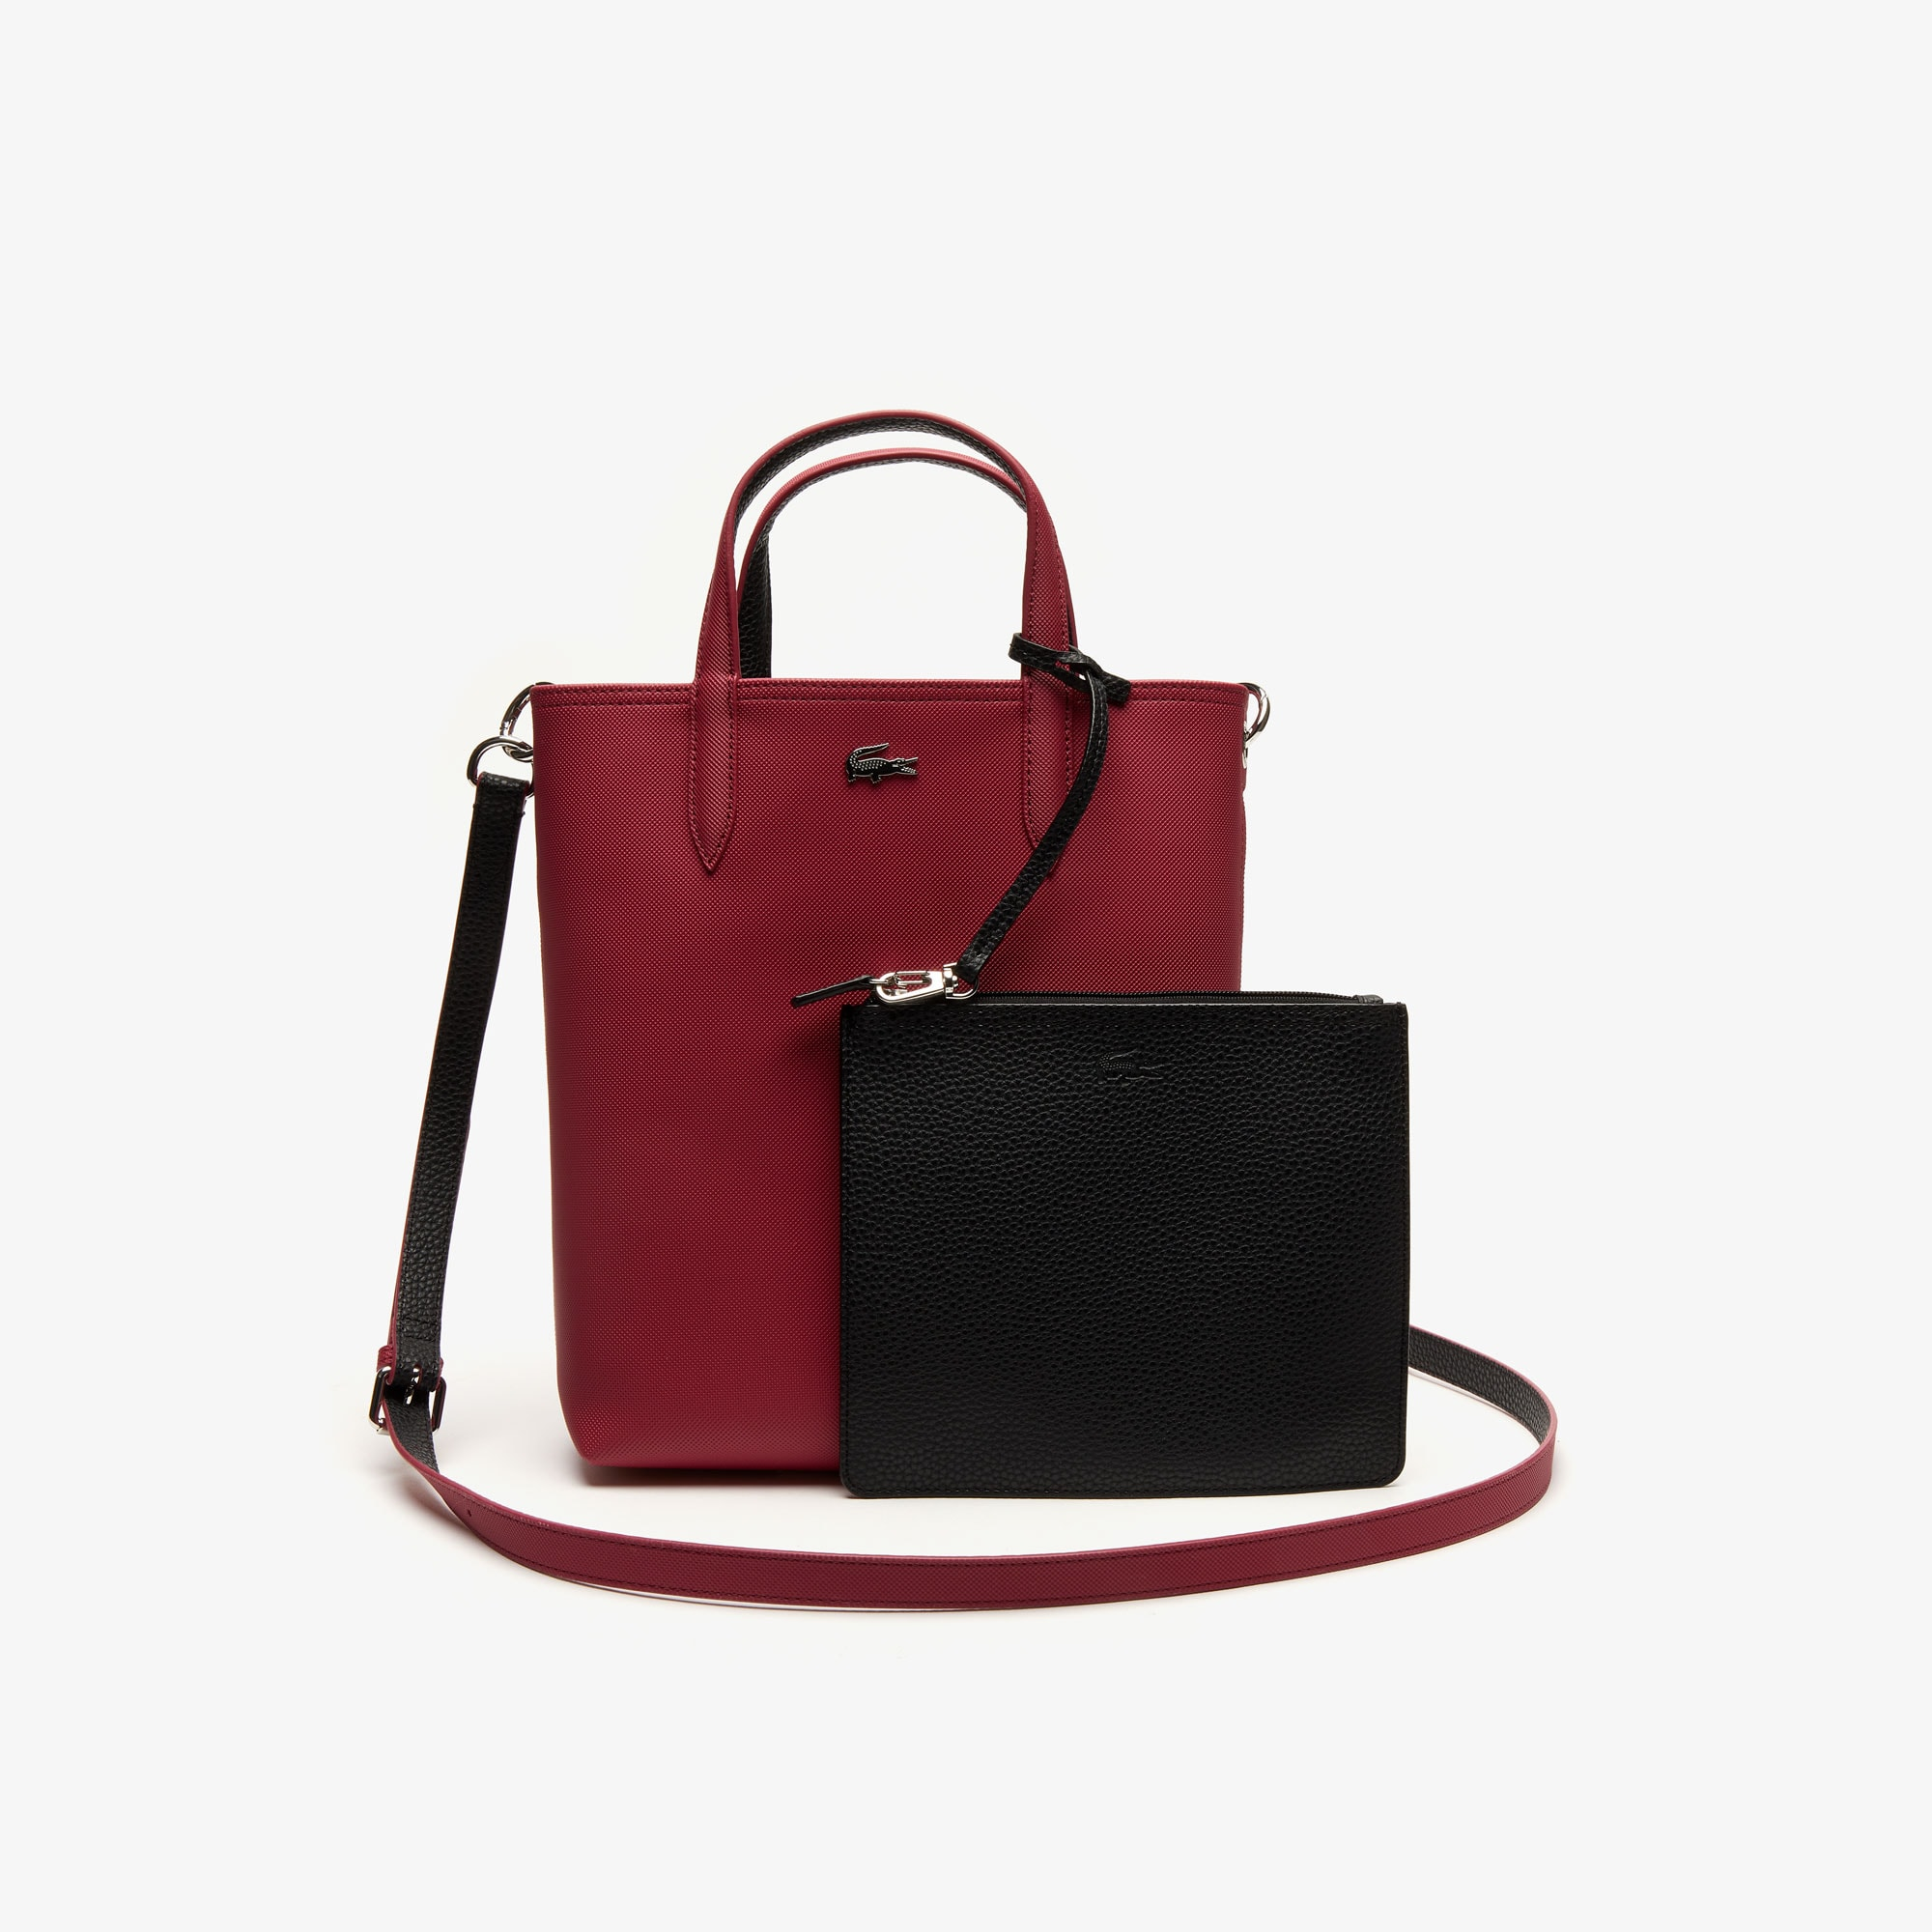 8e1c48fde17783 Bags & Handbags Collection | Women's Leather Goods | LACOSTE